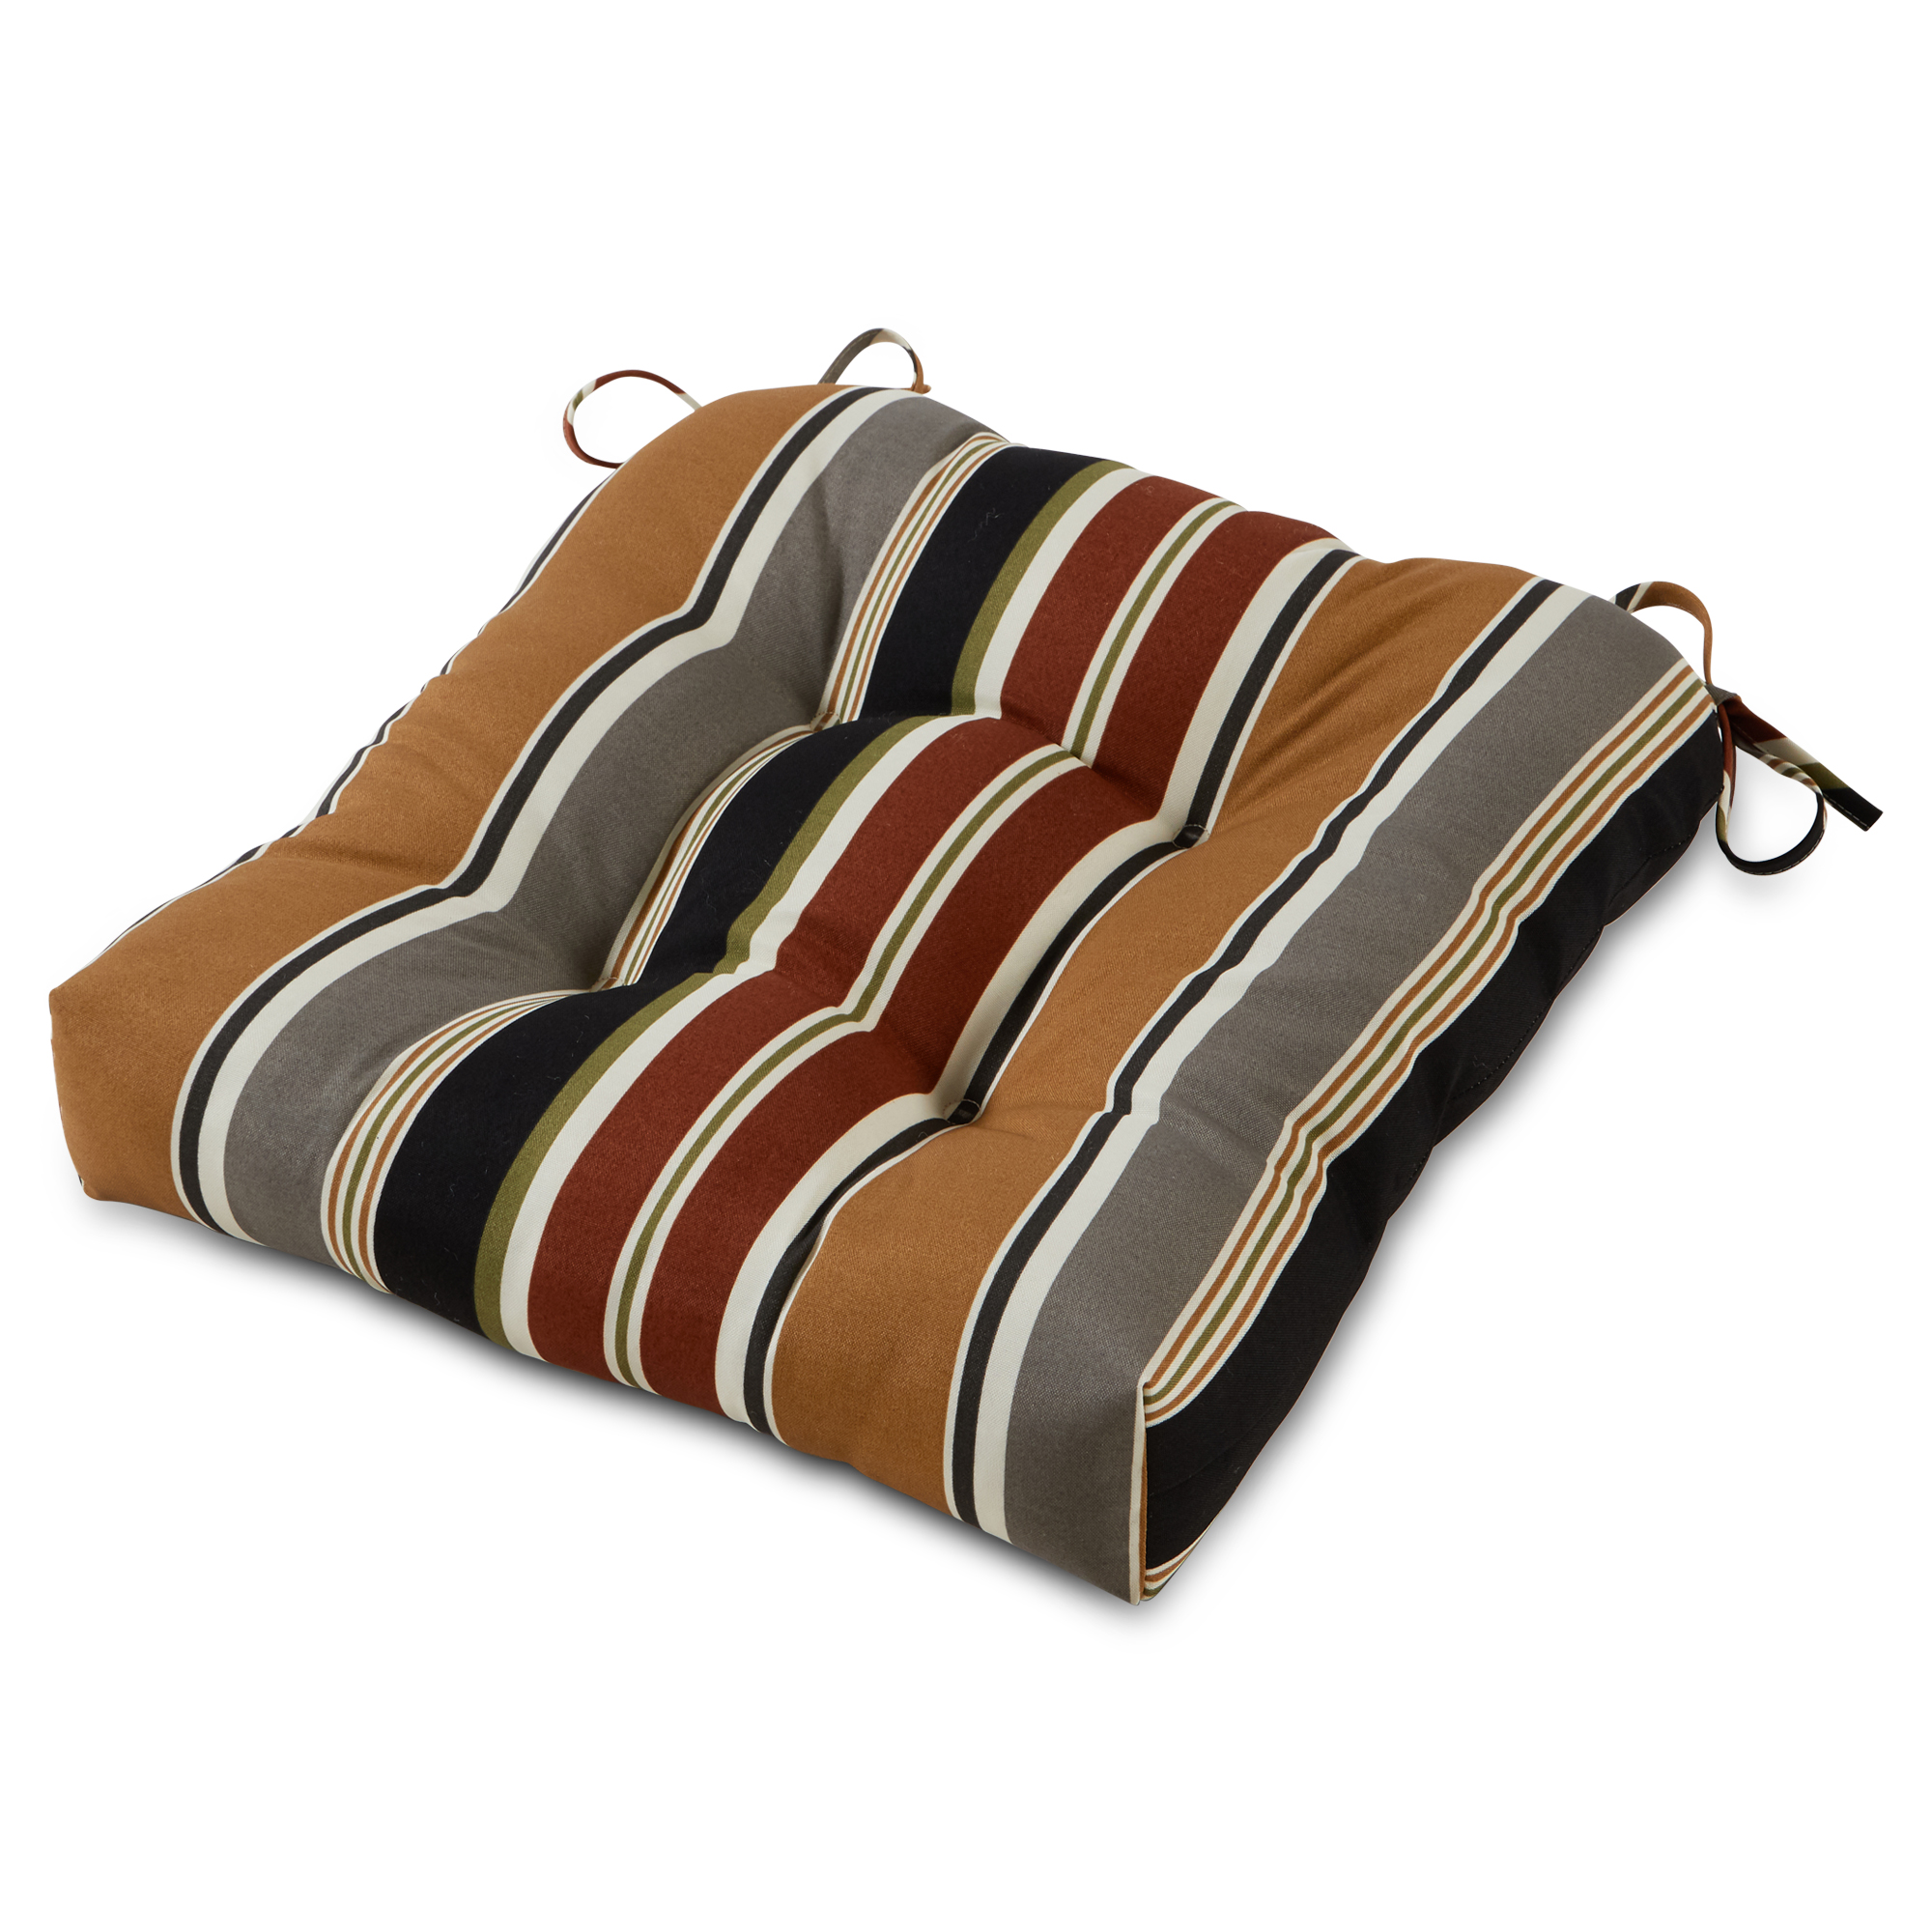 New Ideas 20 Square Outdoor Chair Cushions